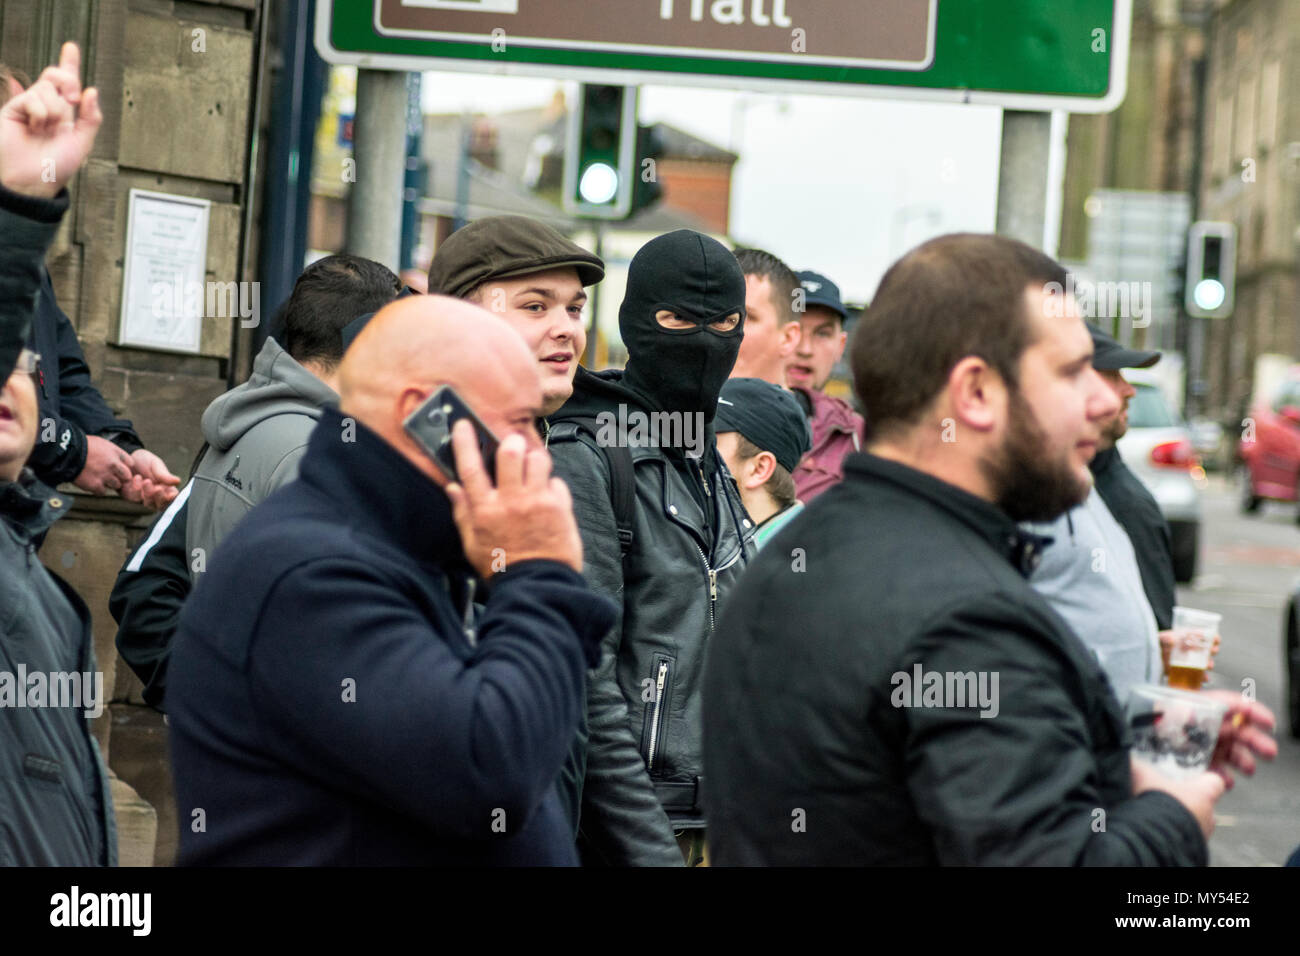 28 October 2017 - The far-right group EDL gather in Stoke-on-Trent, alongside leaders Paul Golding and Jayda Fransen, which quickly turned violent with clashes with the police and anti-protestors - Stock Image